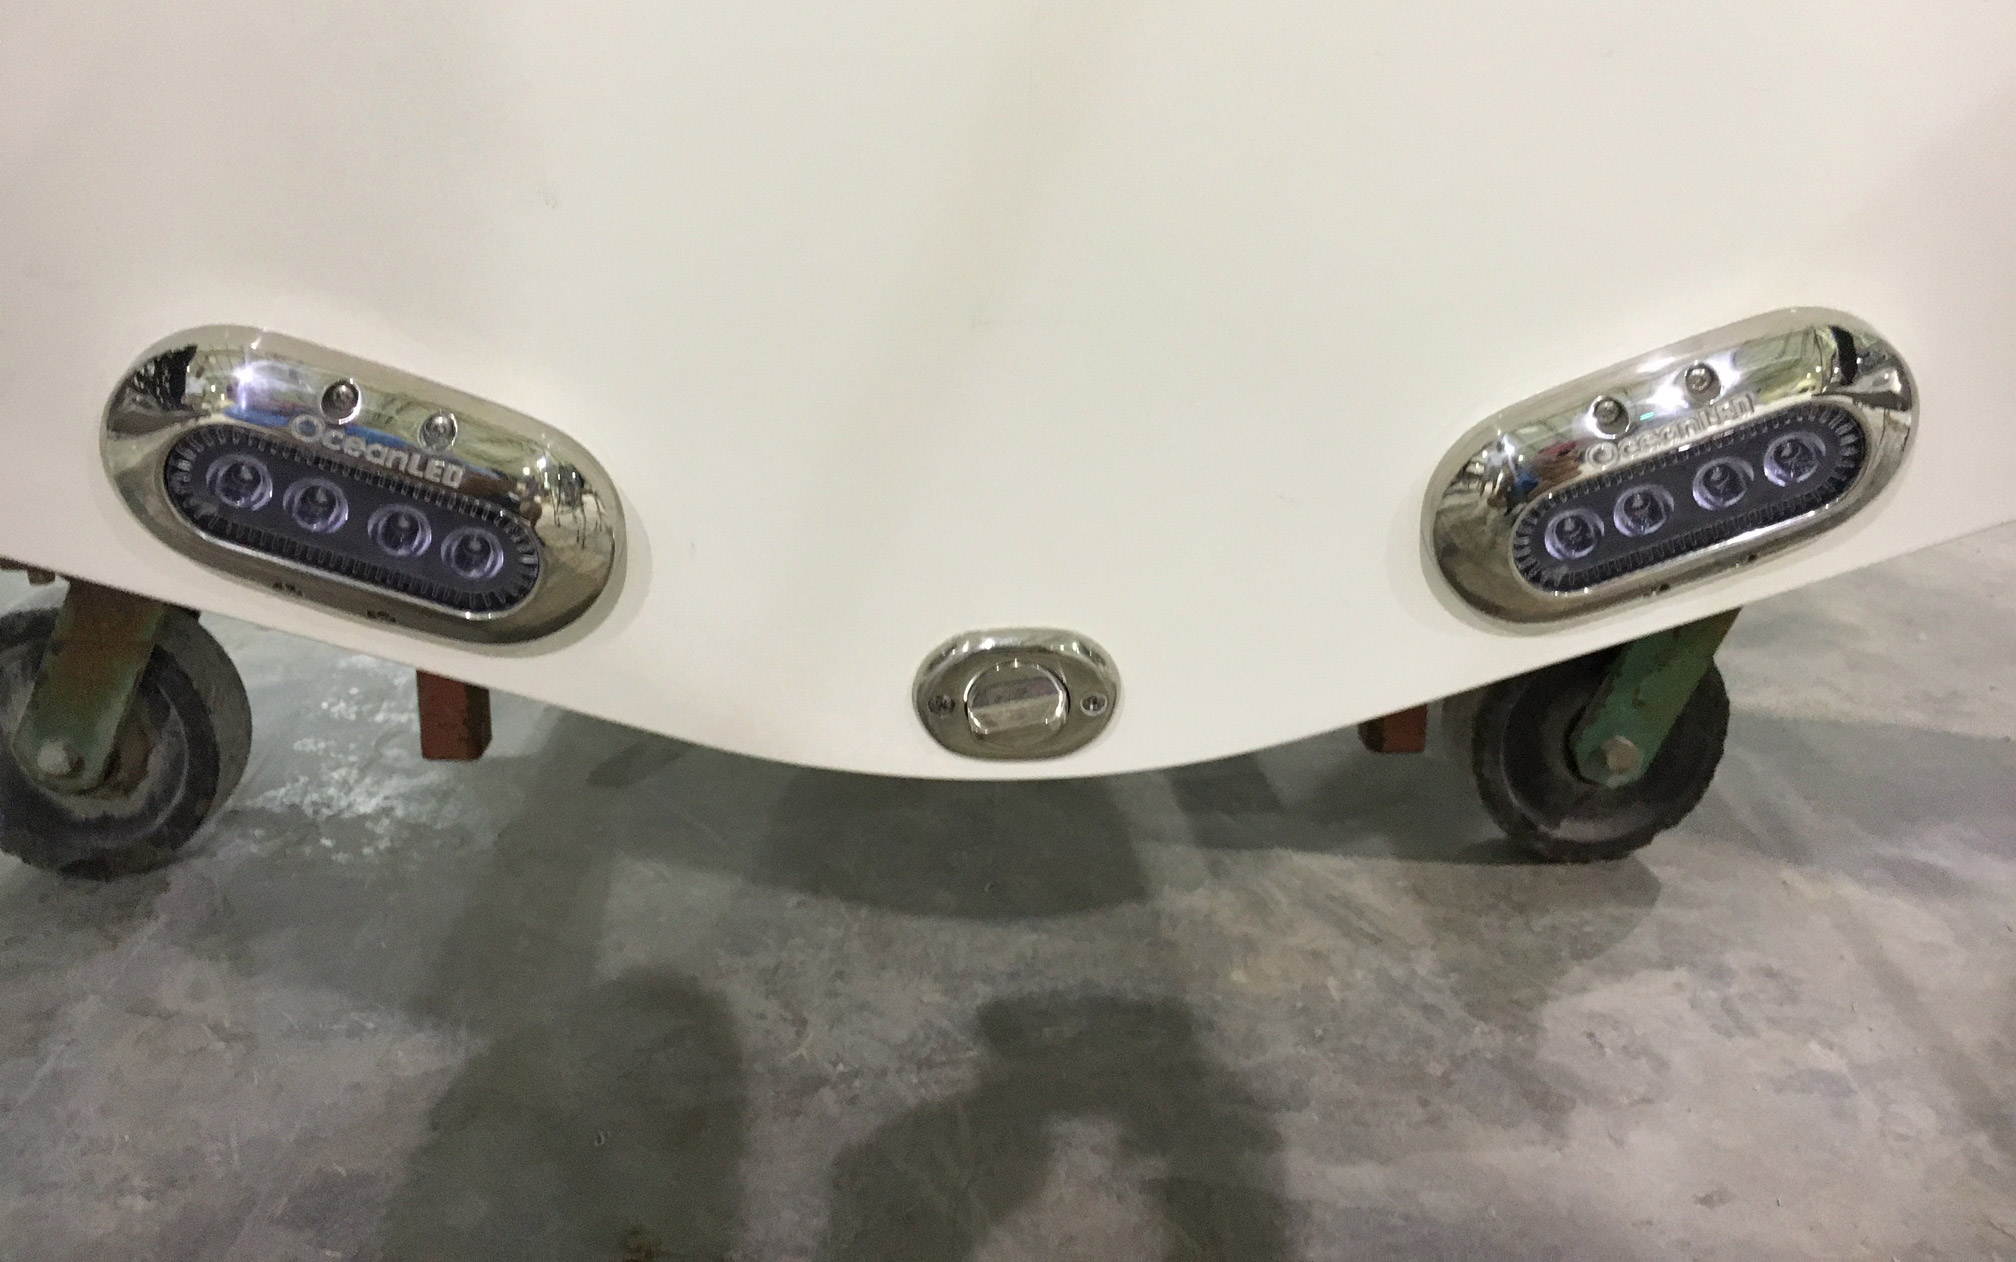 The stern shows off a set of Bennett trim tabs and Ocean LED underwater lights.